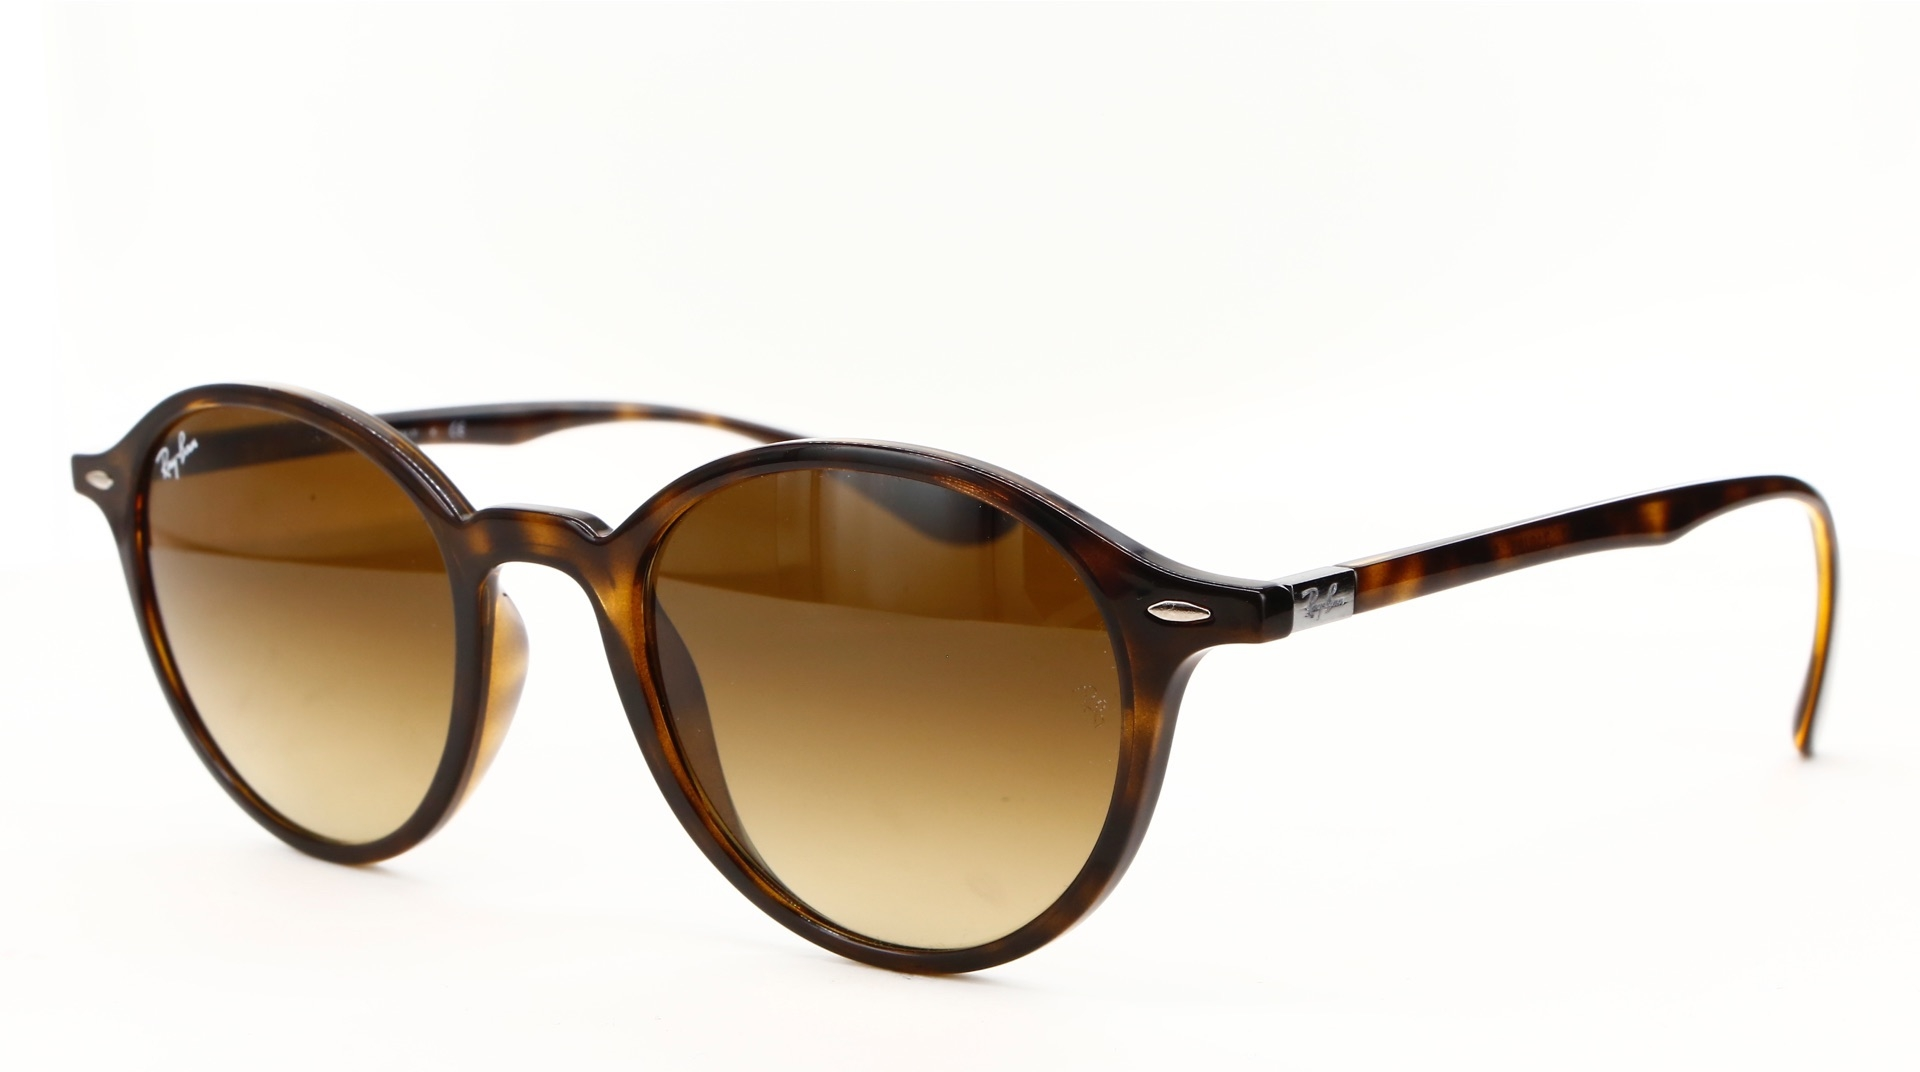 Ray-Ban - ref: 79137